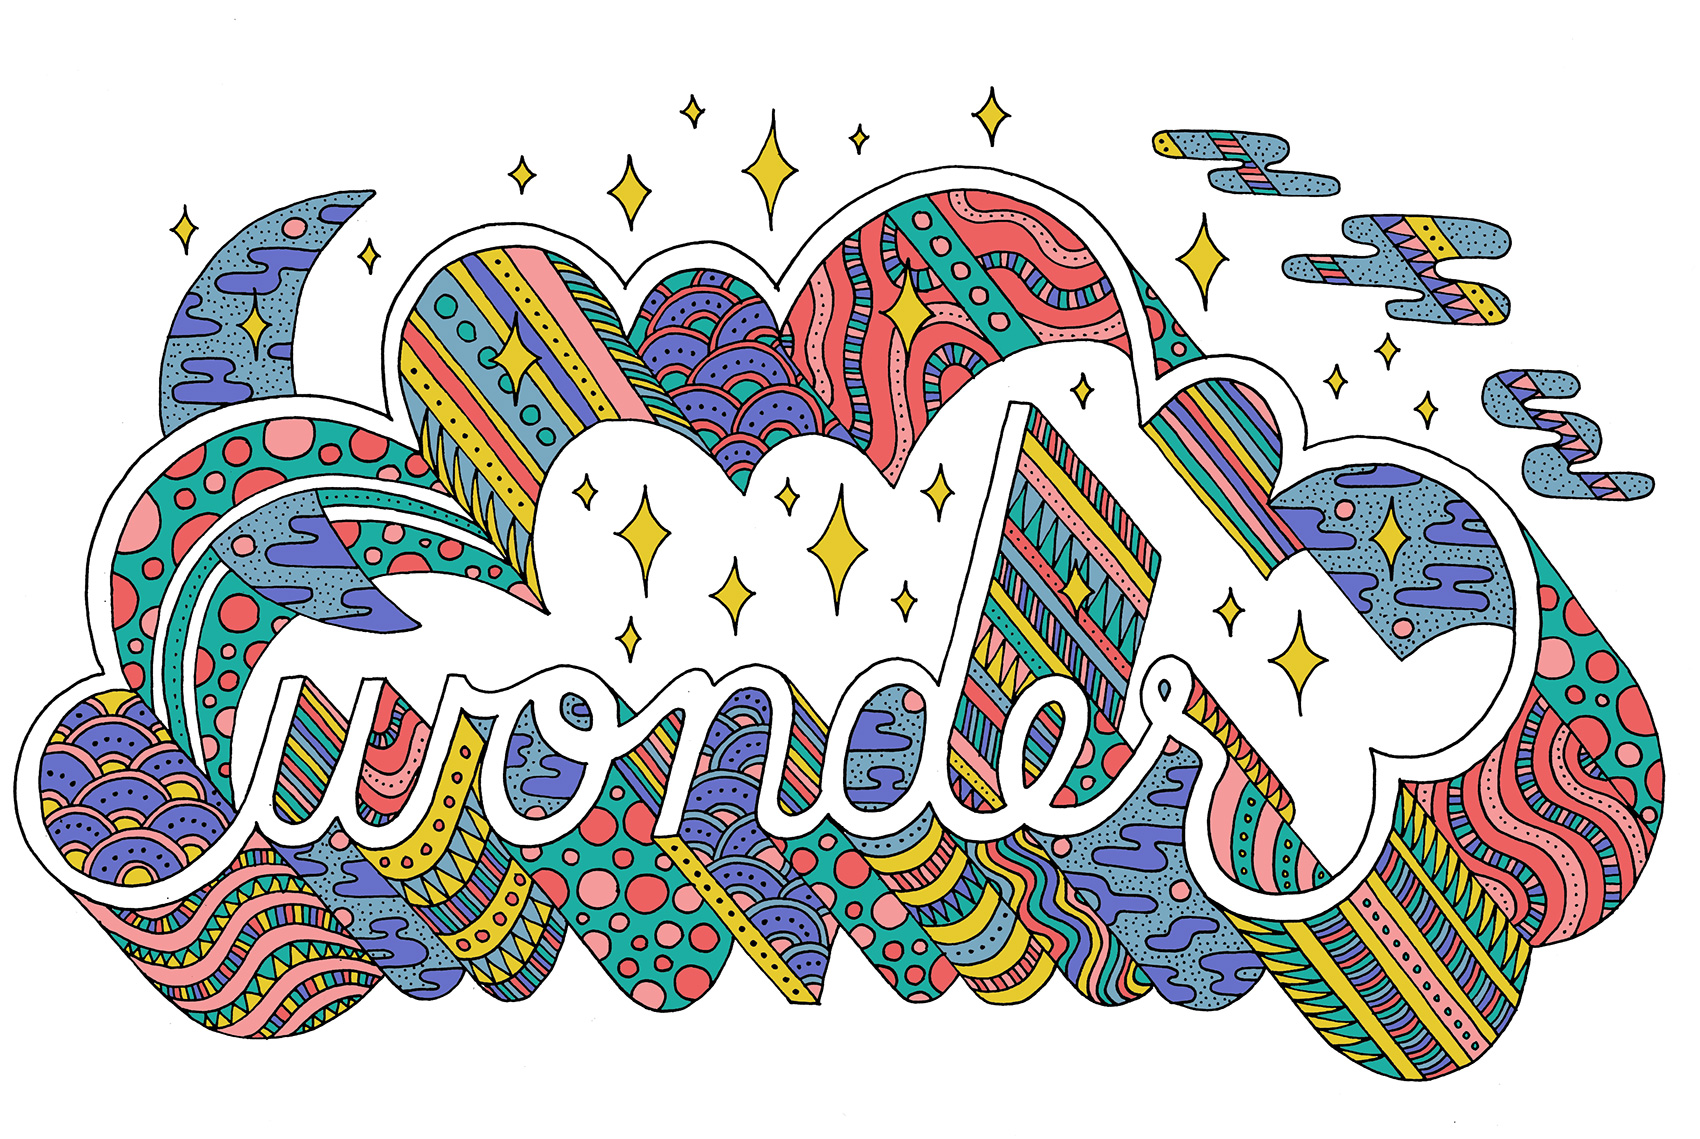 Wonder typography: night sky scene in 3D type filled with patterns and textures.